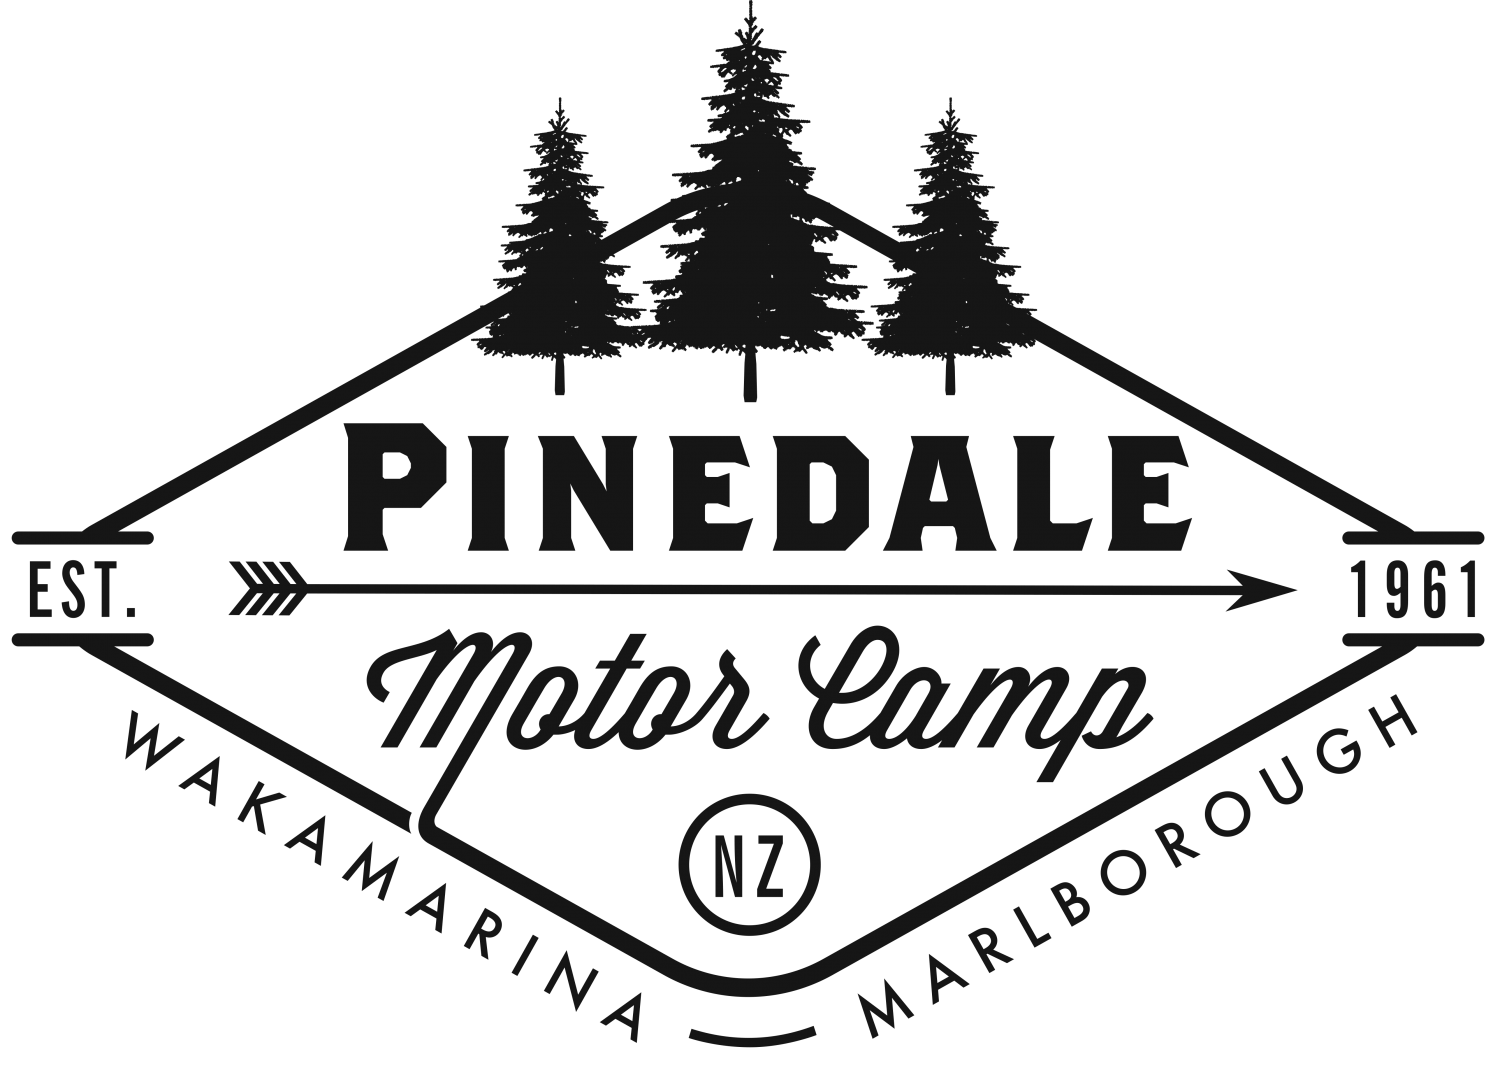 cropped-pinedale-motor-camp.png